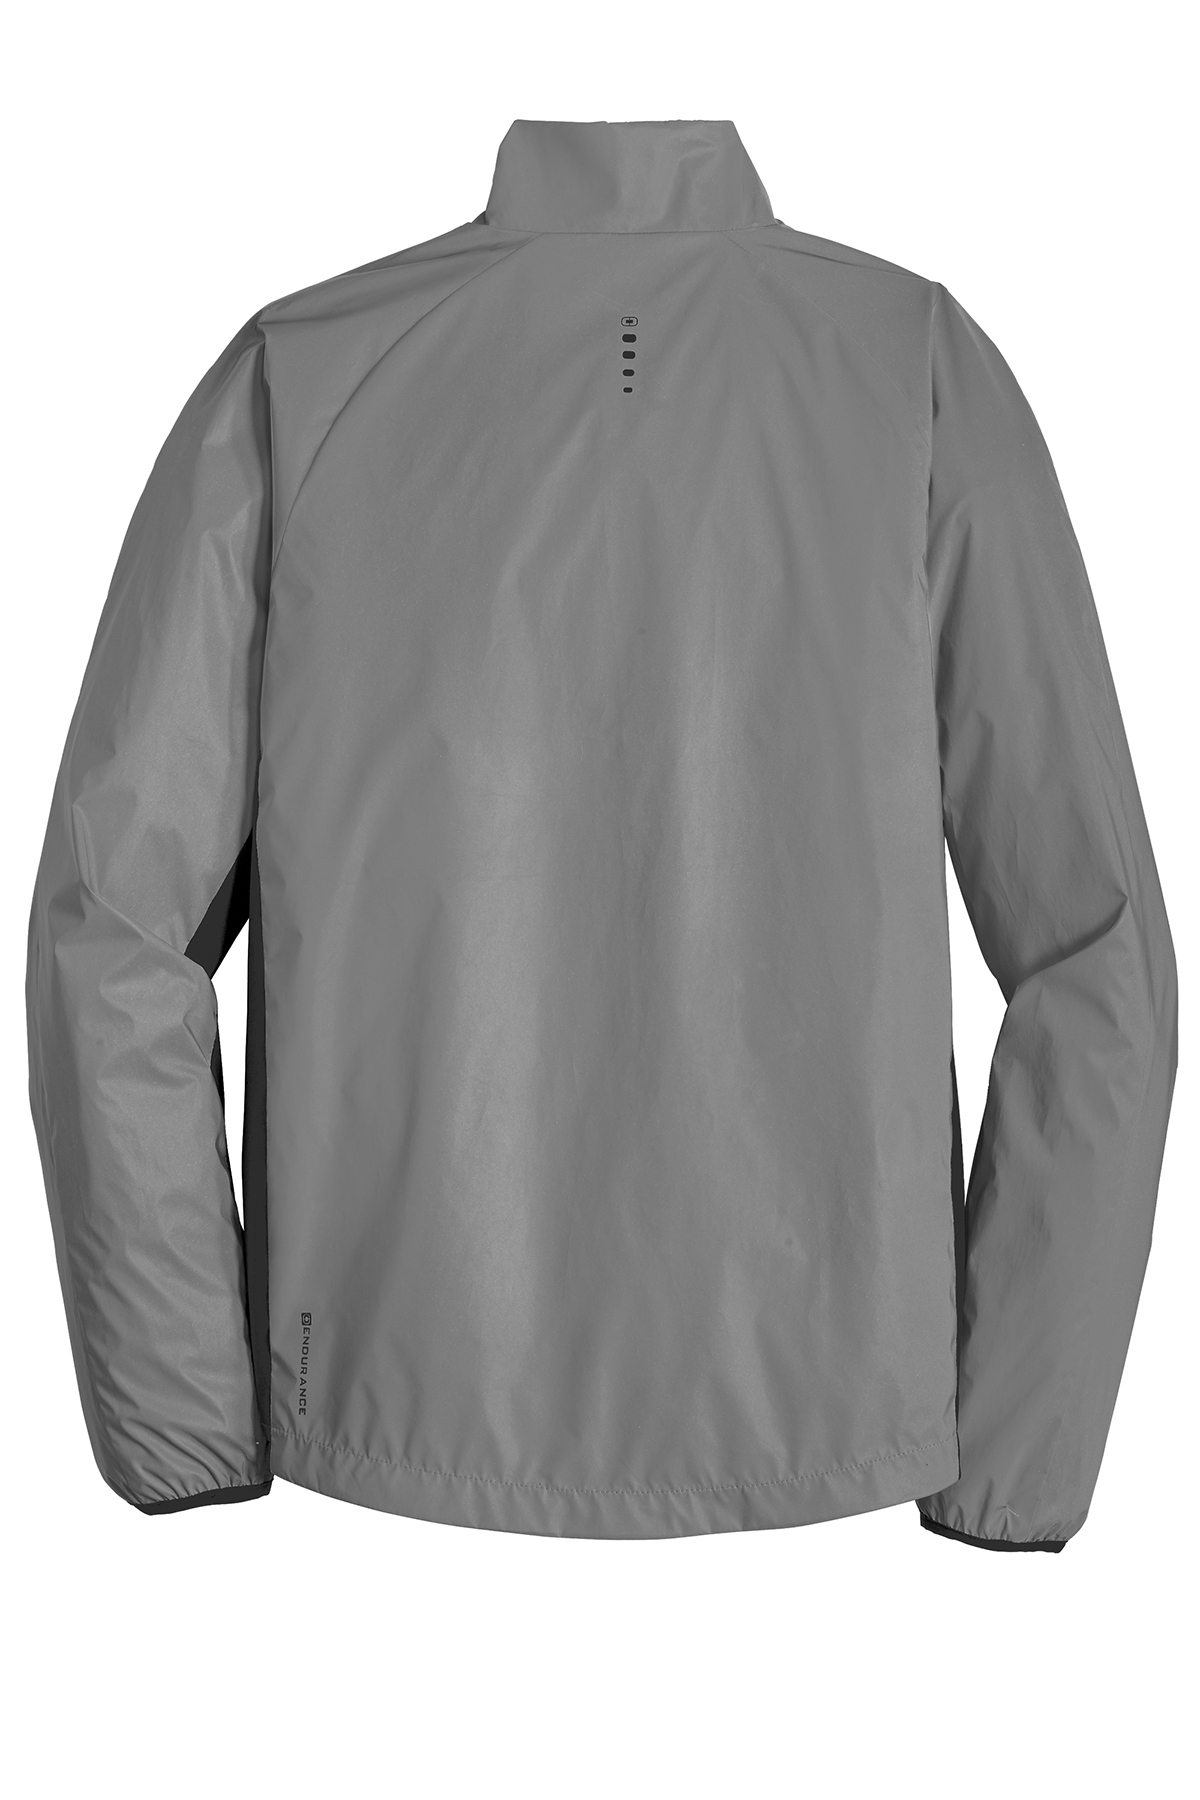 e55f855eb14 ... OGIO® ENDURANCE Flash Jacket. A maximum of 8 logos have been uploaded.  Please remove a logo from My Logos to continue